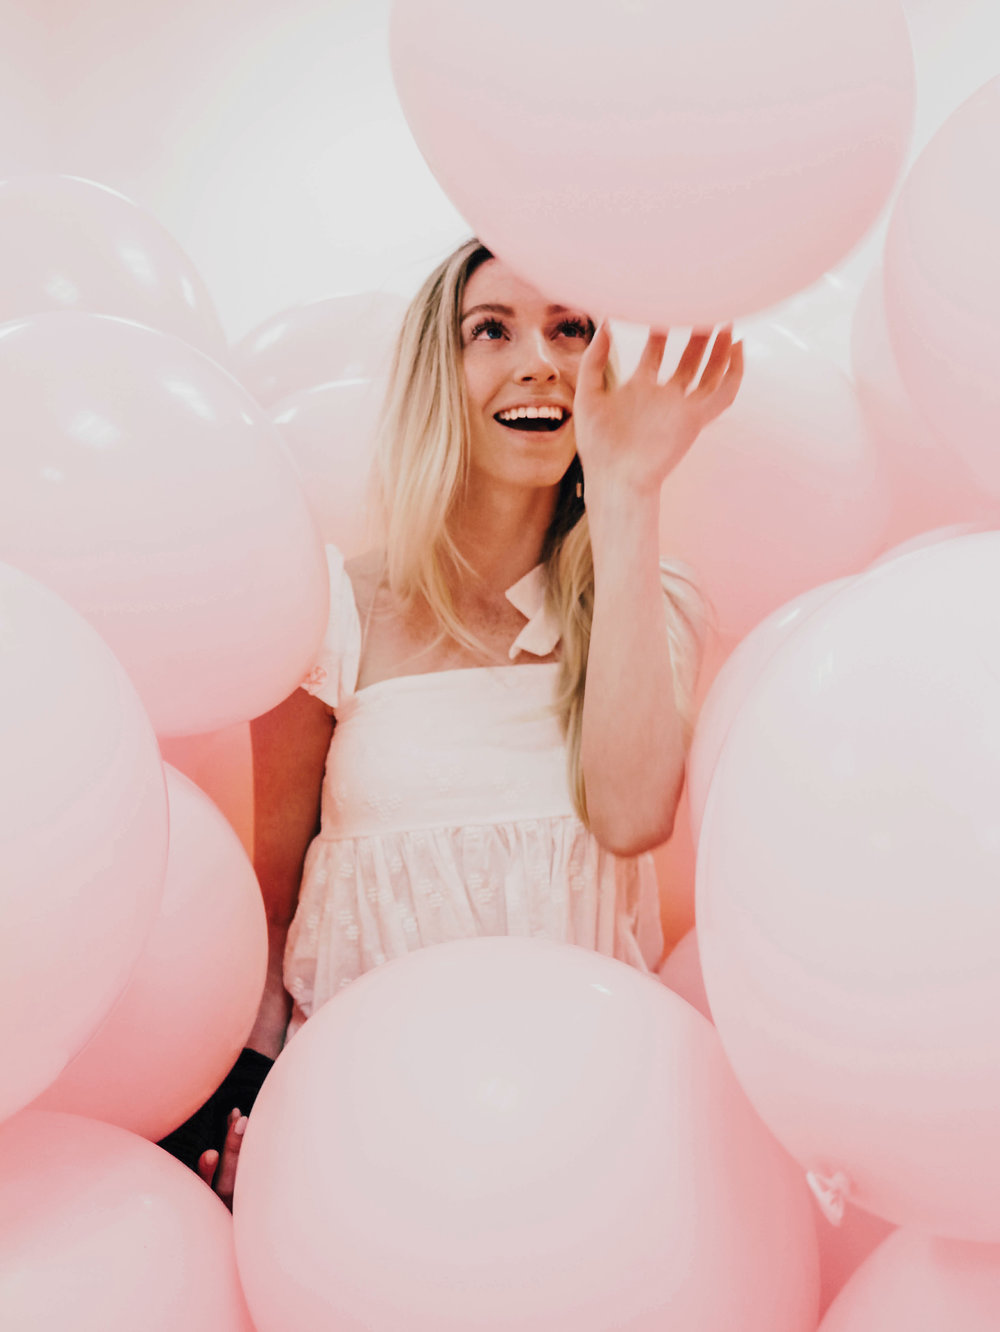 Pink Balloon Room | @maevestier